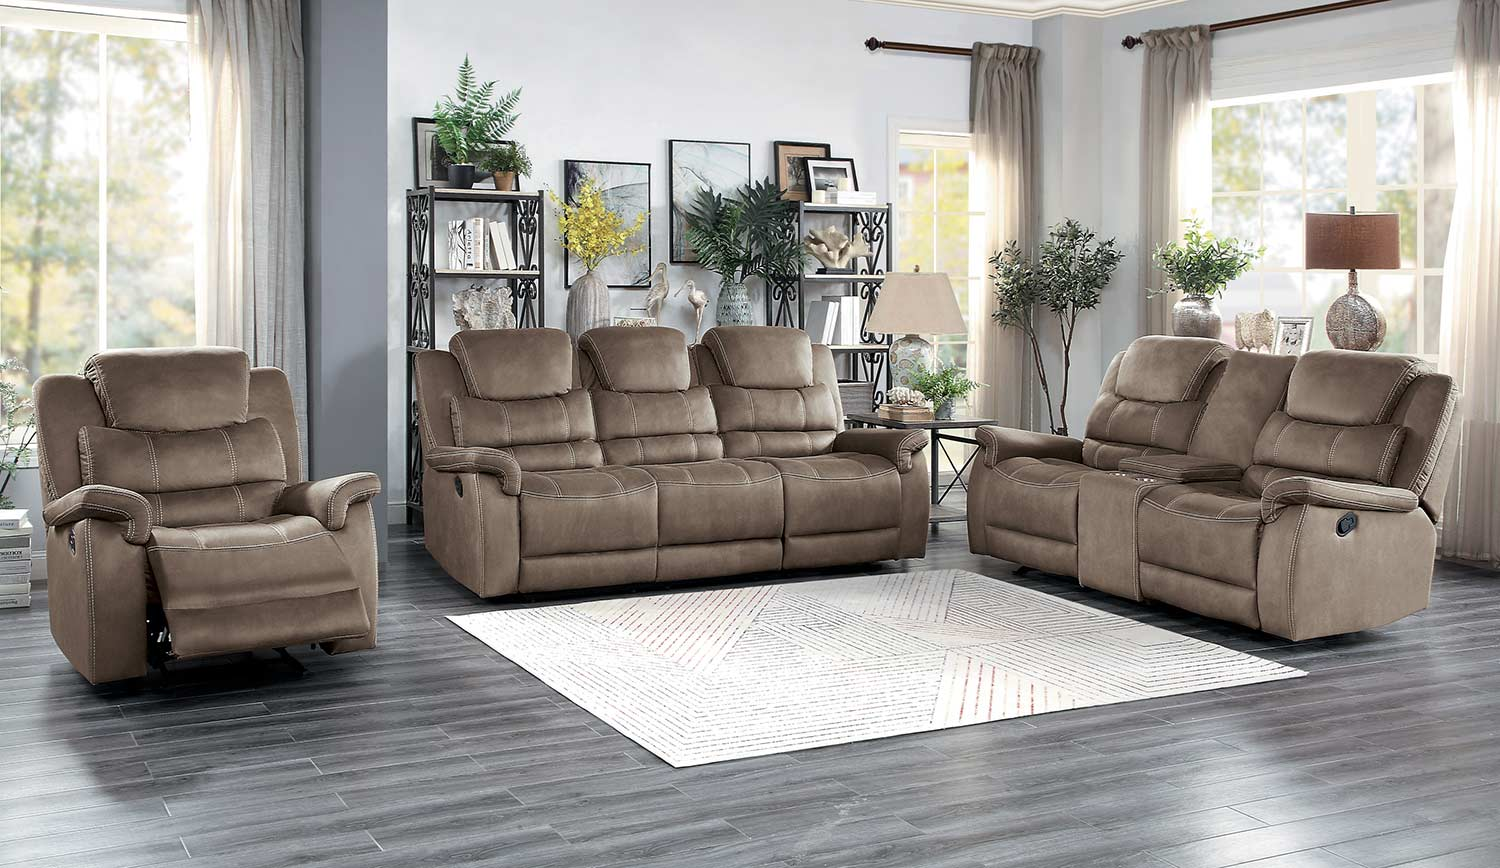 Homelegance Shola Power Reclining Sofa Set - Brown